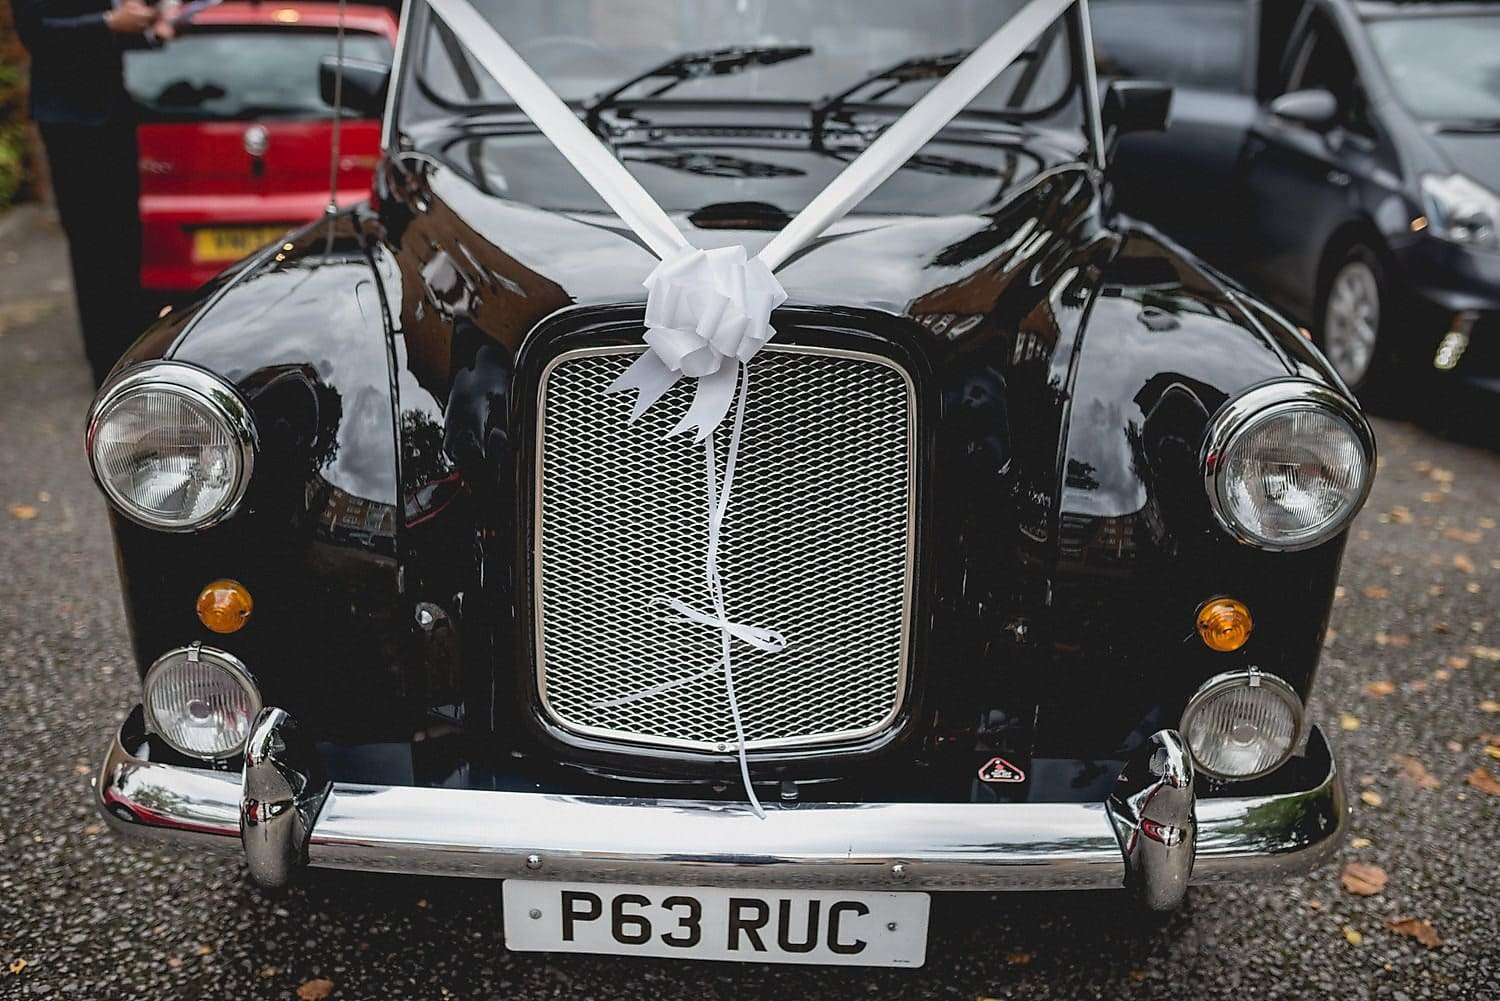 Black cab wedding car decorated with white ribbon